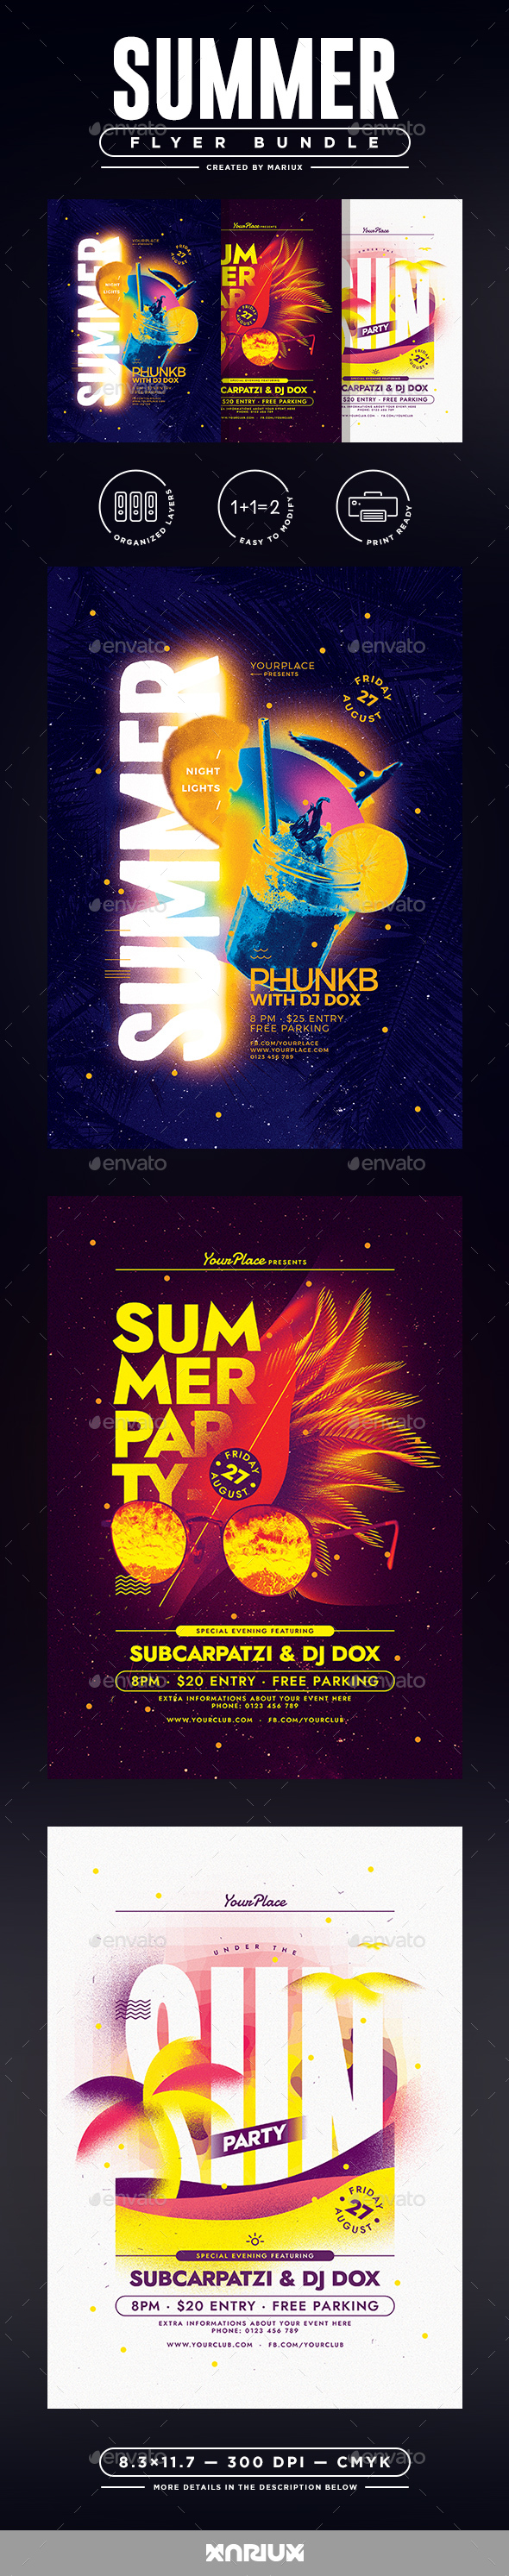 Summer Party Flyer/Poster Bundle - Clubs & Parties Events